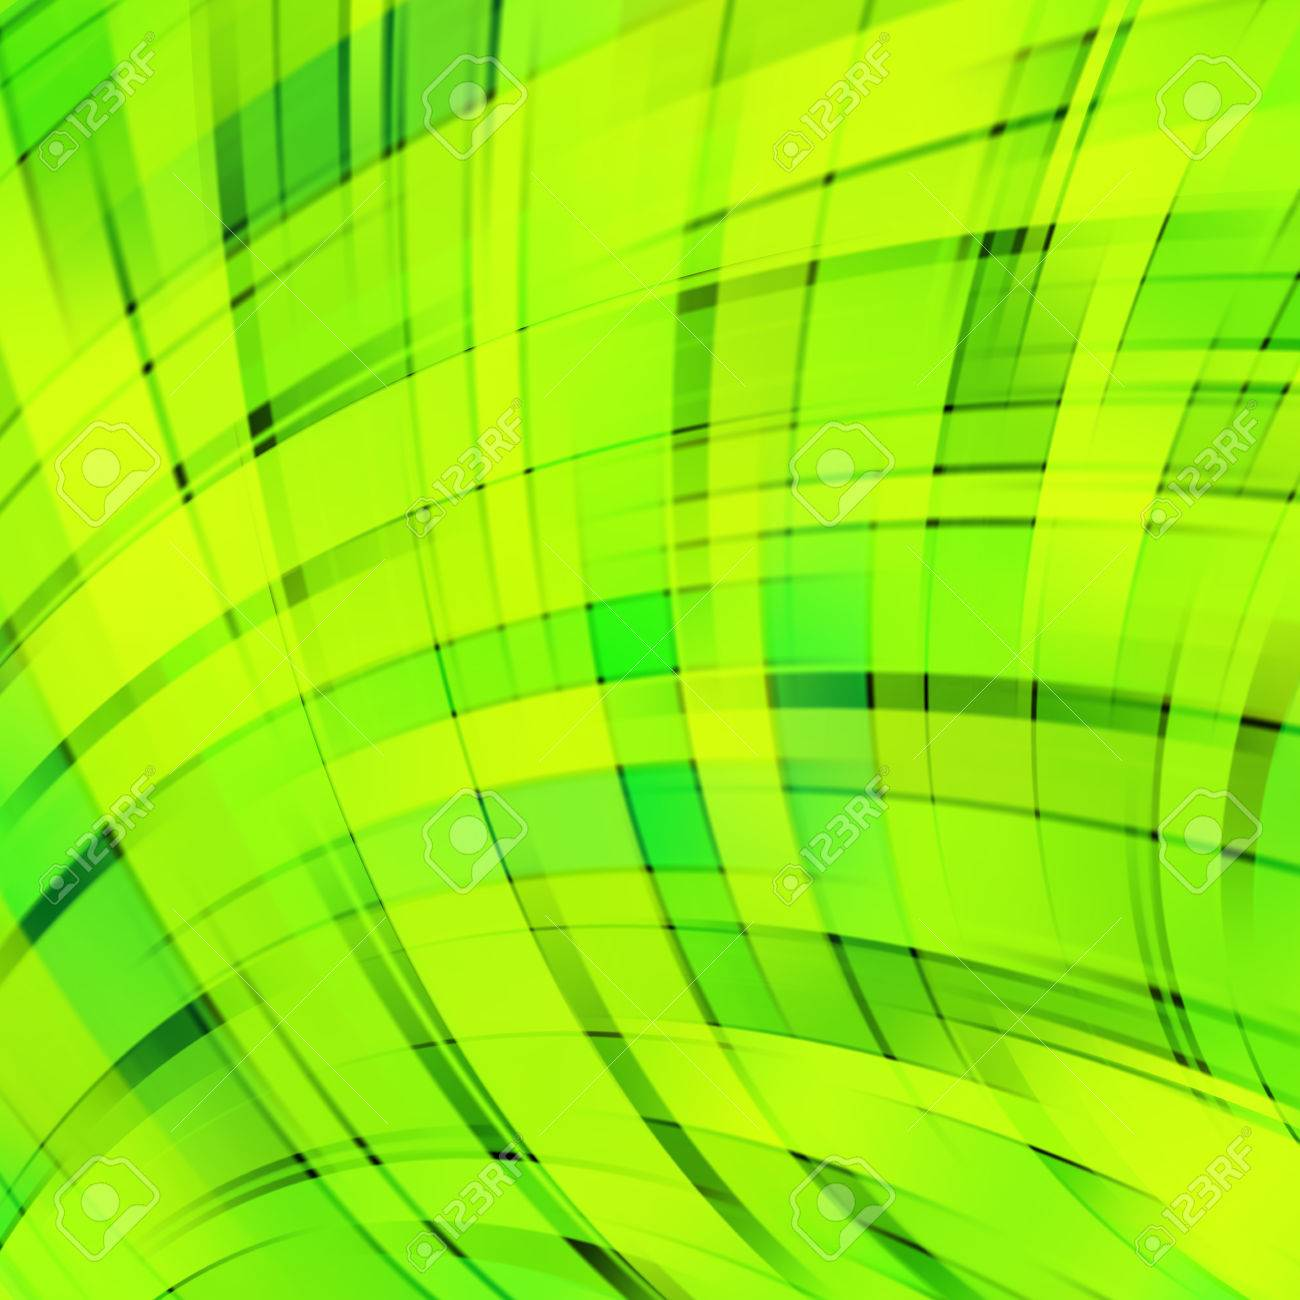 Vector Illustration Of Neon Green Abstract Background With Blurred